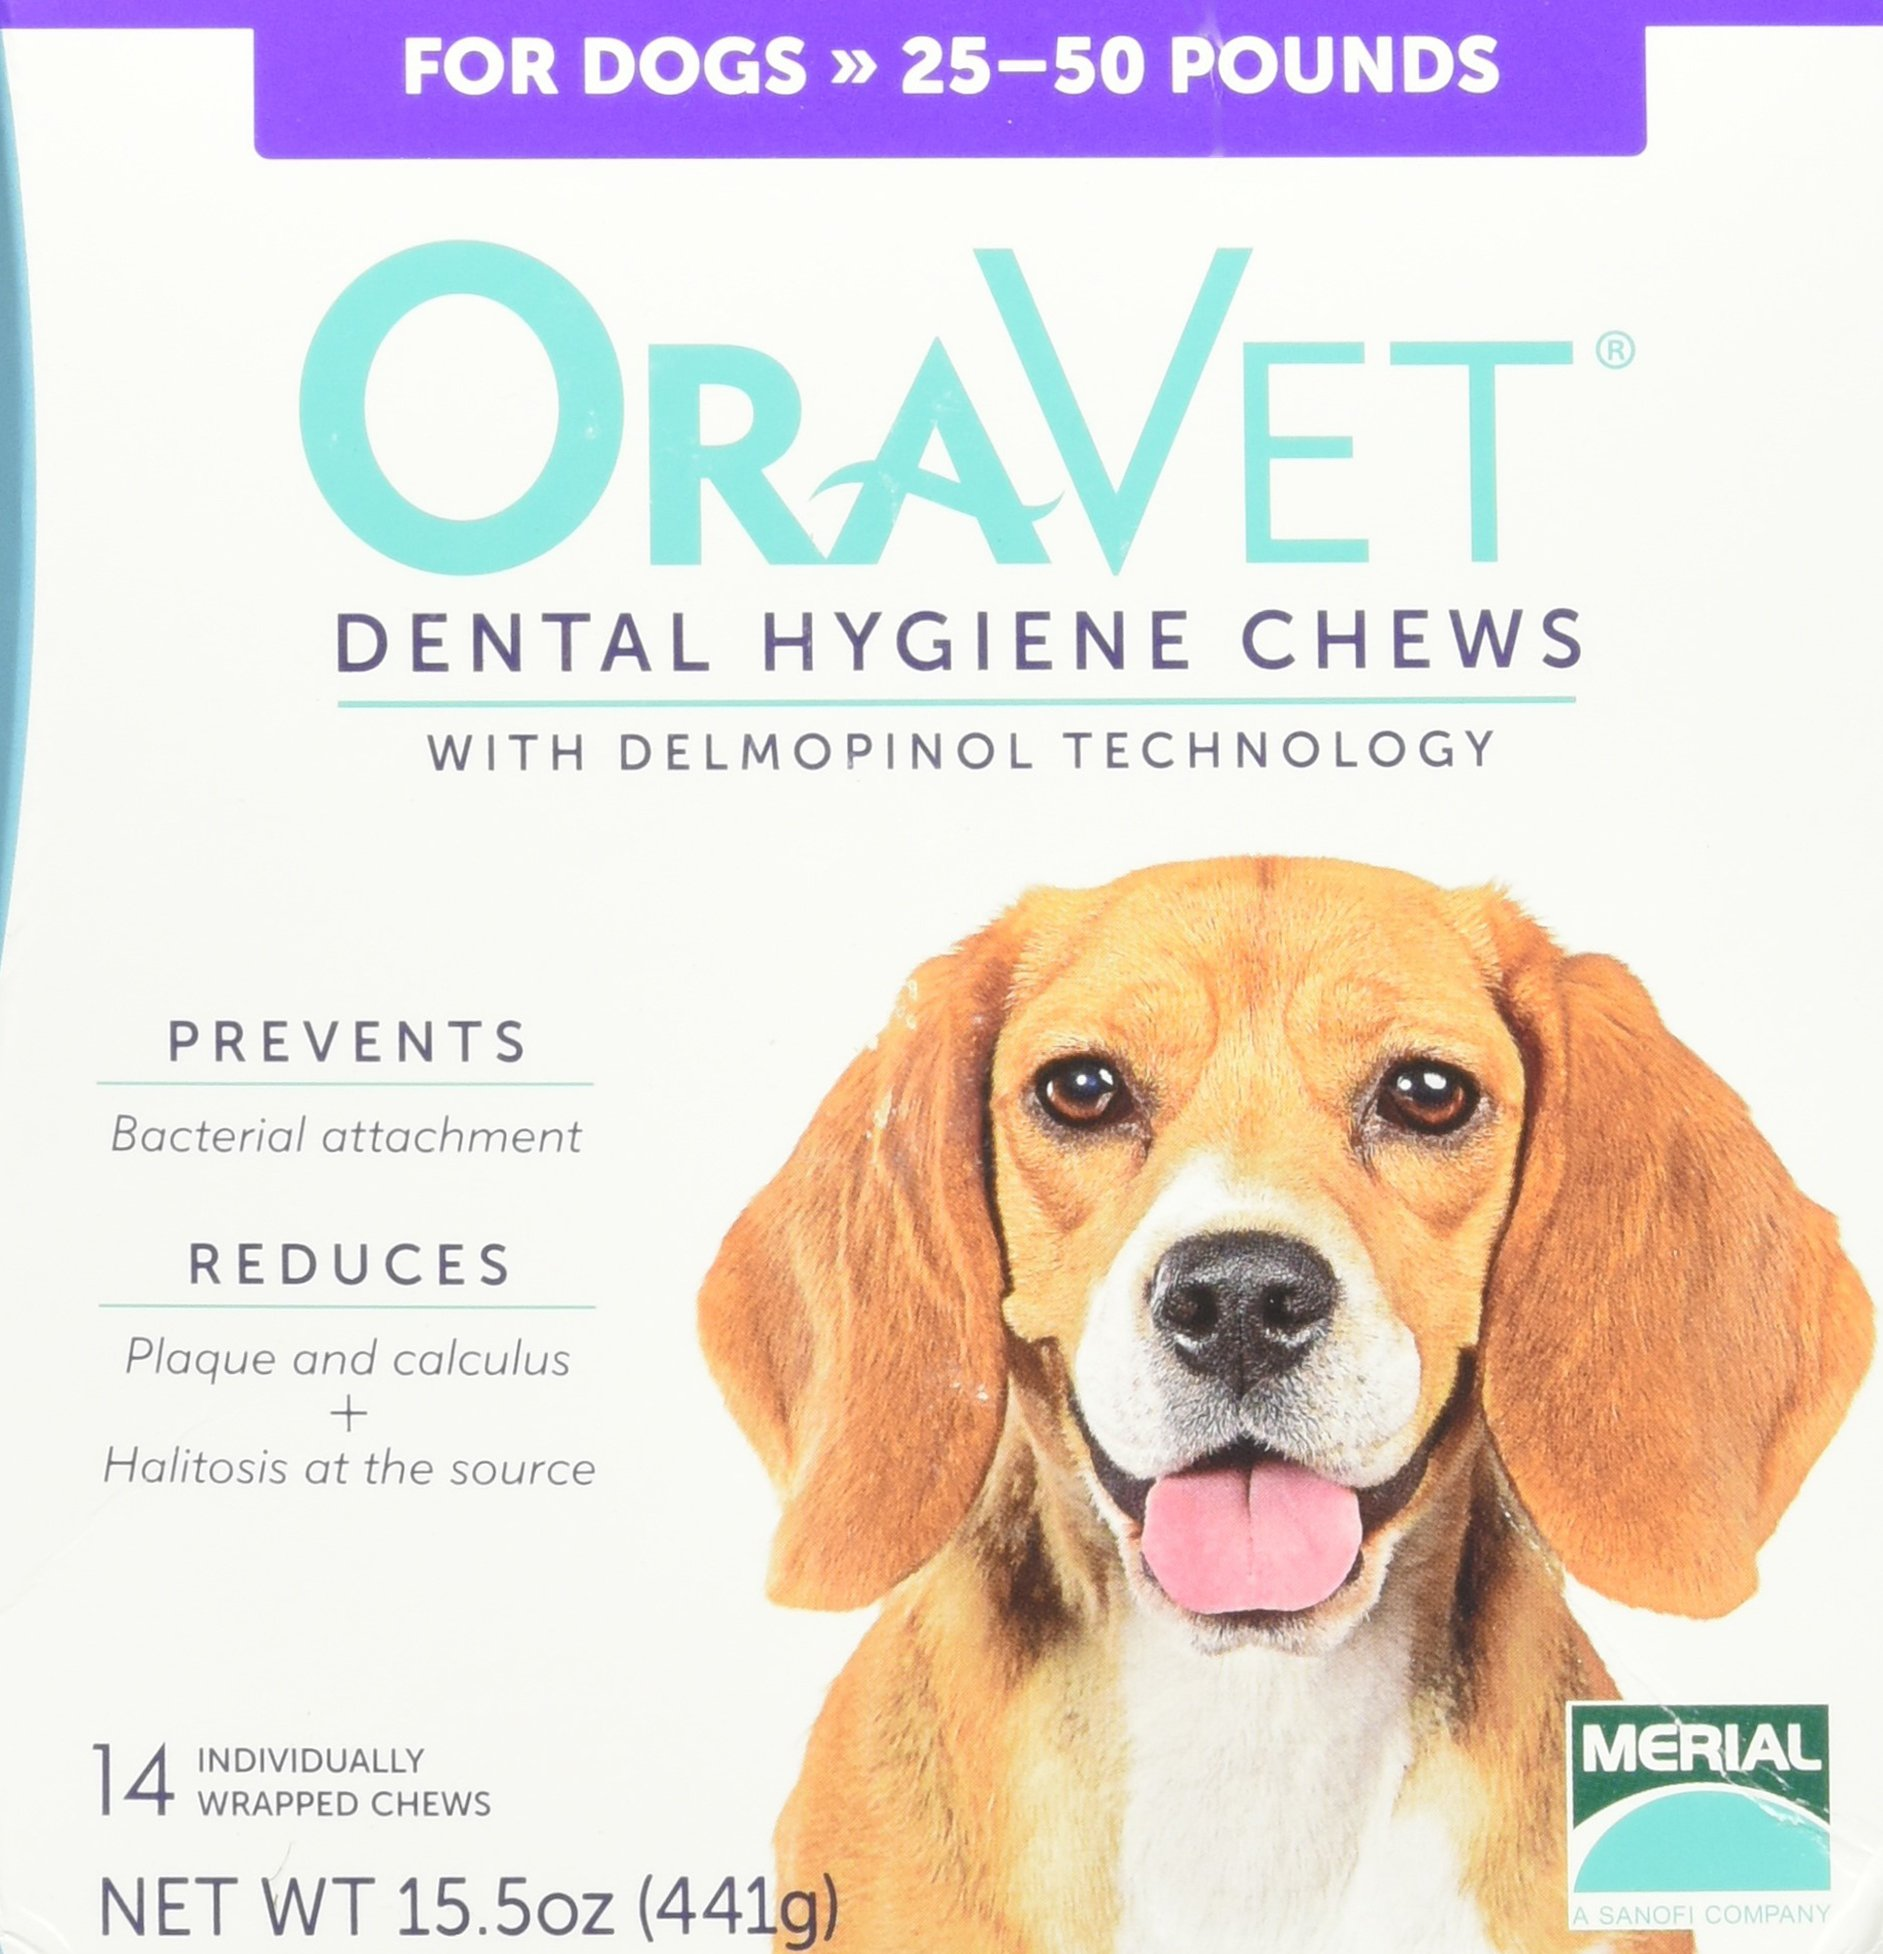 Merial Oravet Dental Hygiene Chew for Medium Dogs (25-50 lbs), Dental Treats for Dogs, 14 Count